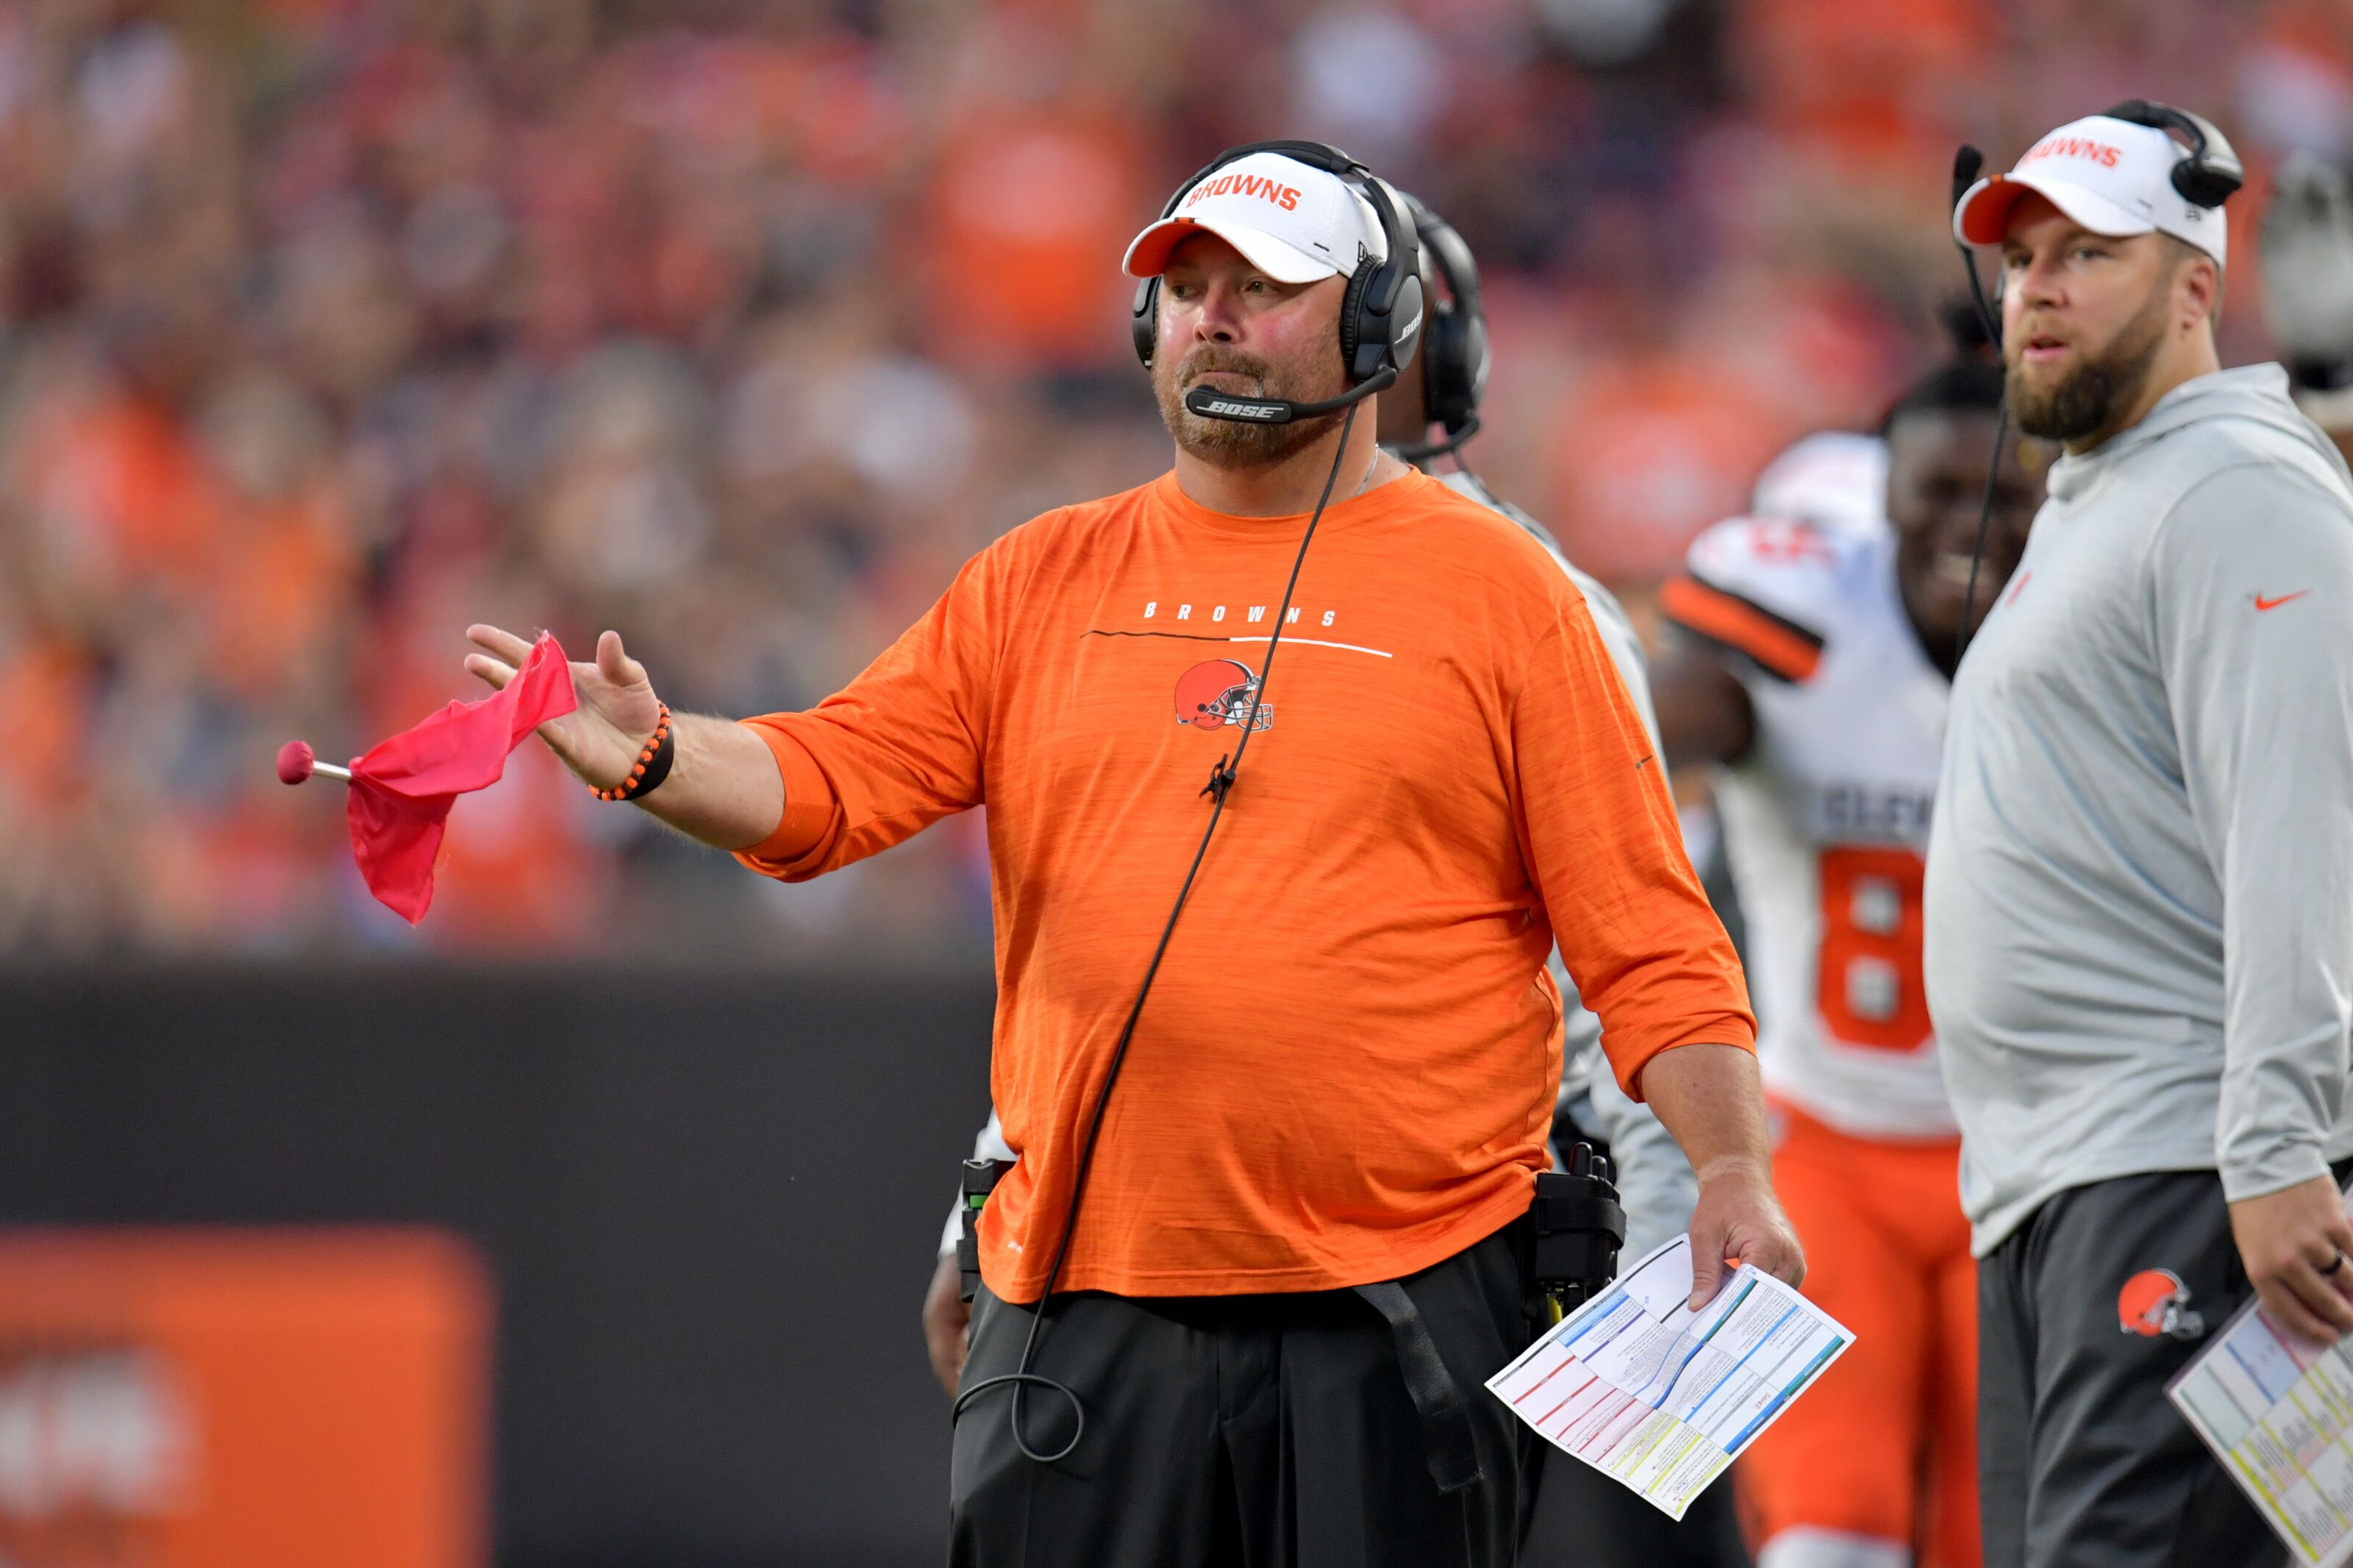 Cleveland Browns Head Coach Freddie Kitchens marching to the beat of own drum